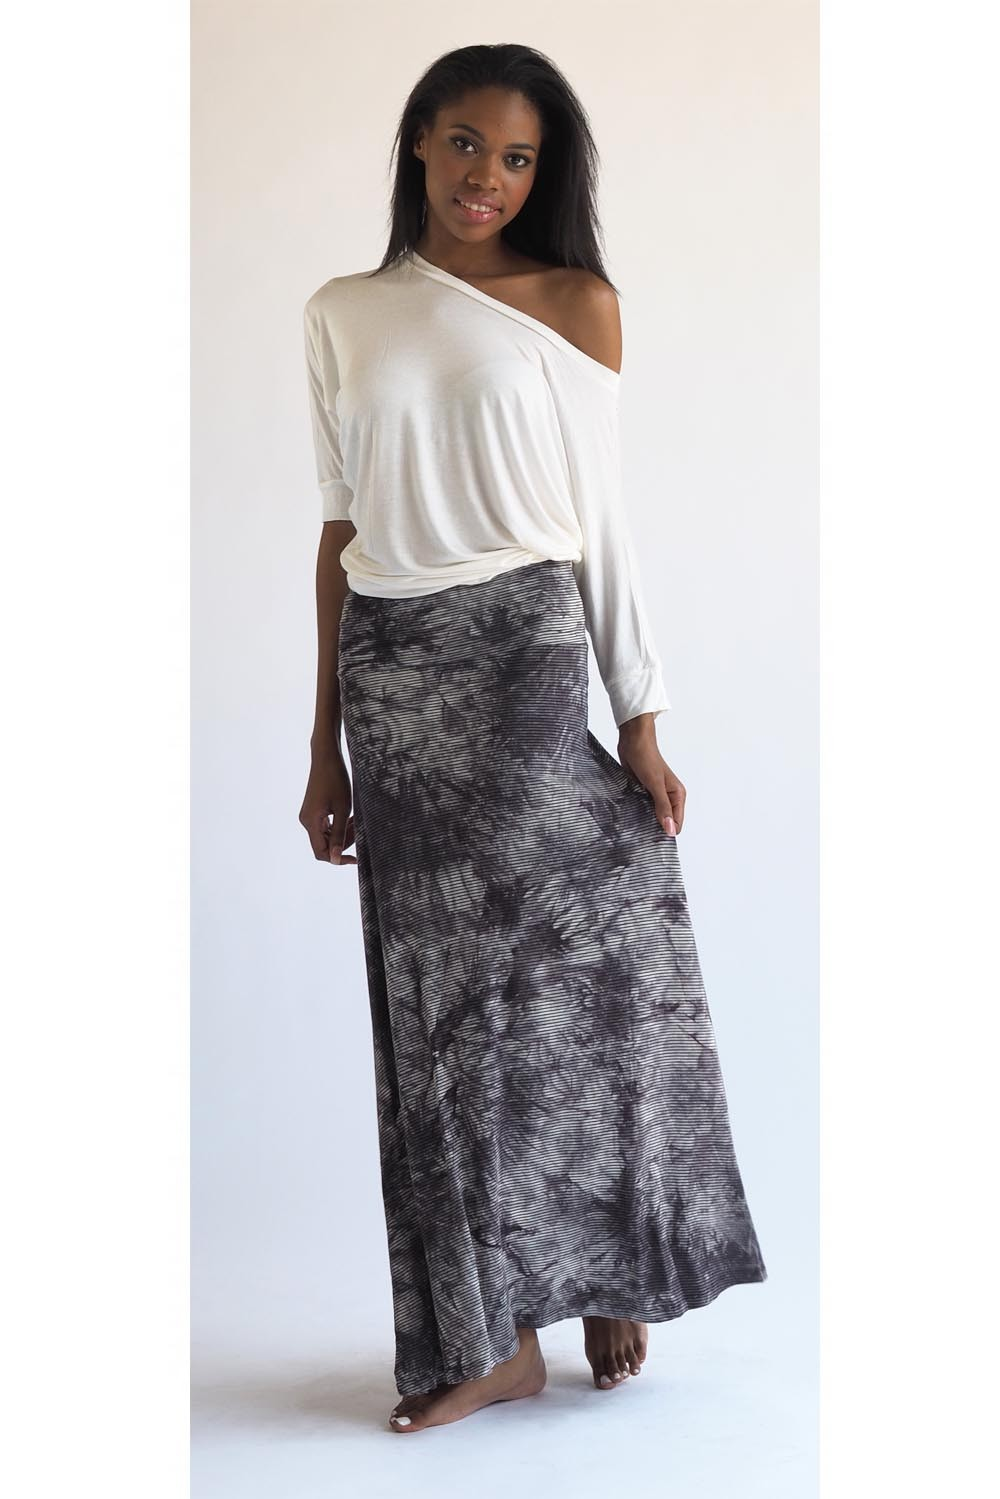 tie dyed maxi skirt in grey or blue at discounted price